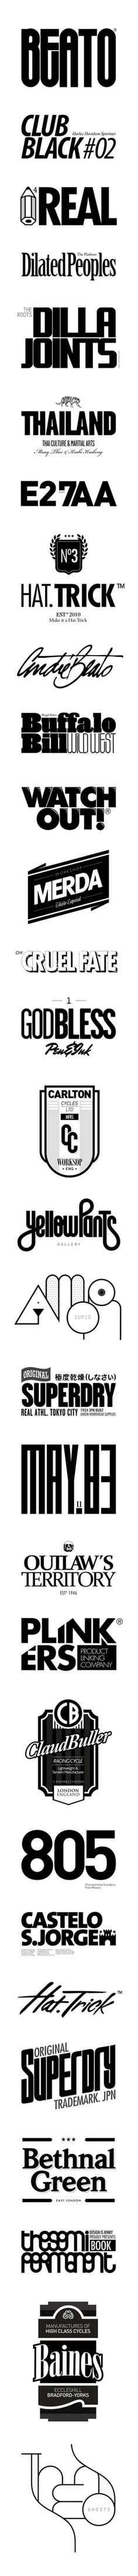 4º Round by André Beato, via Behance